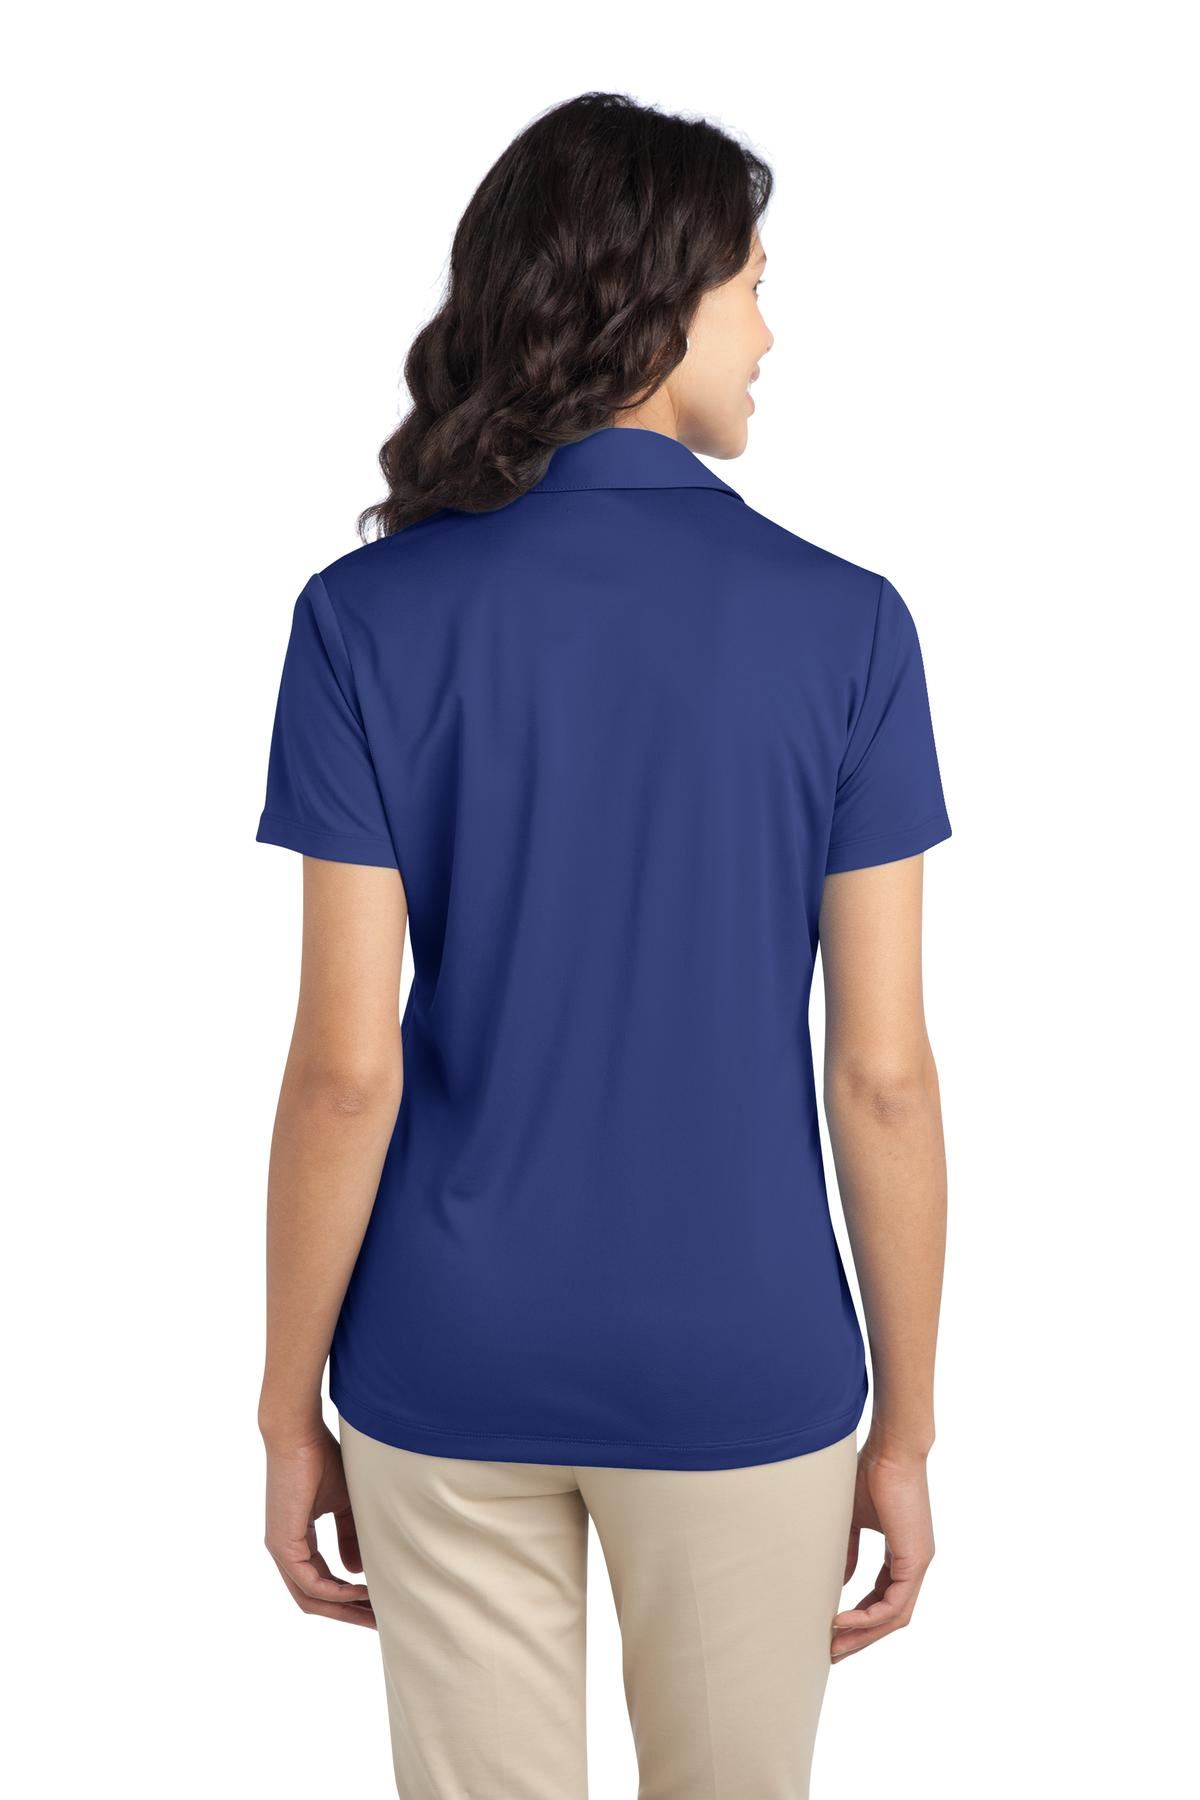 Port-Authority-Womens-Dri-Fit-SIlk-Touch-Performance-Polo-Golf-Shirt-M-L540 thumbnail 29